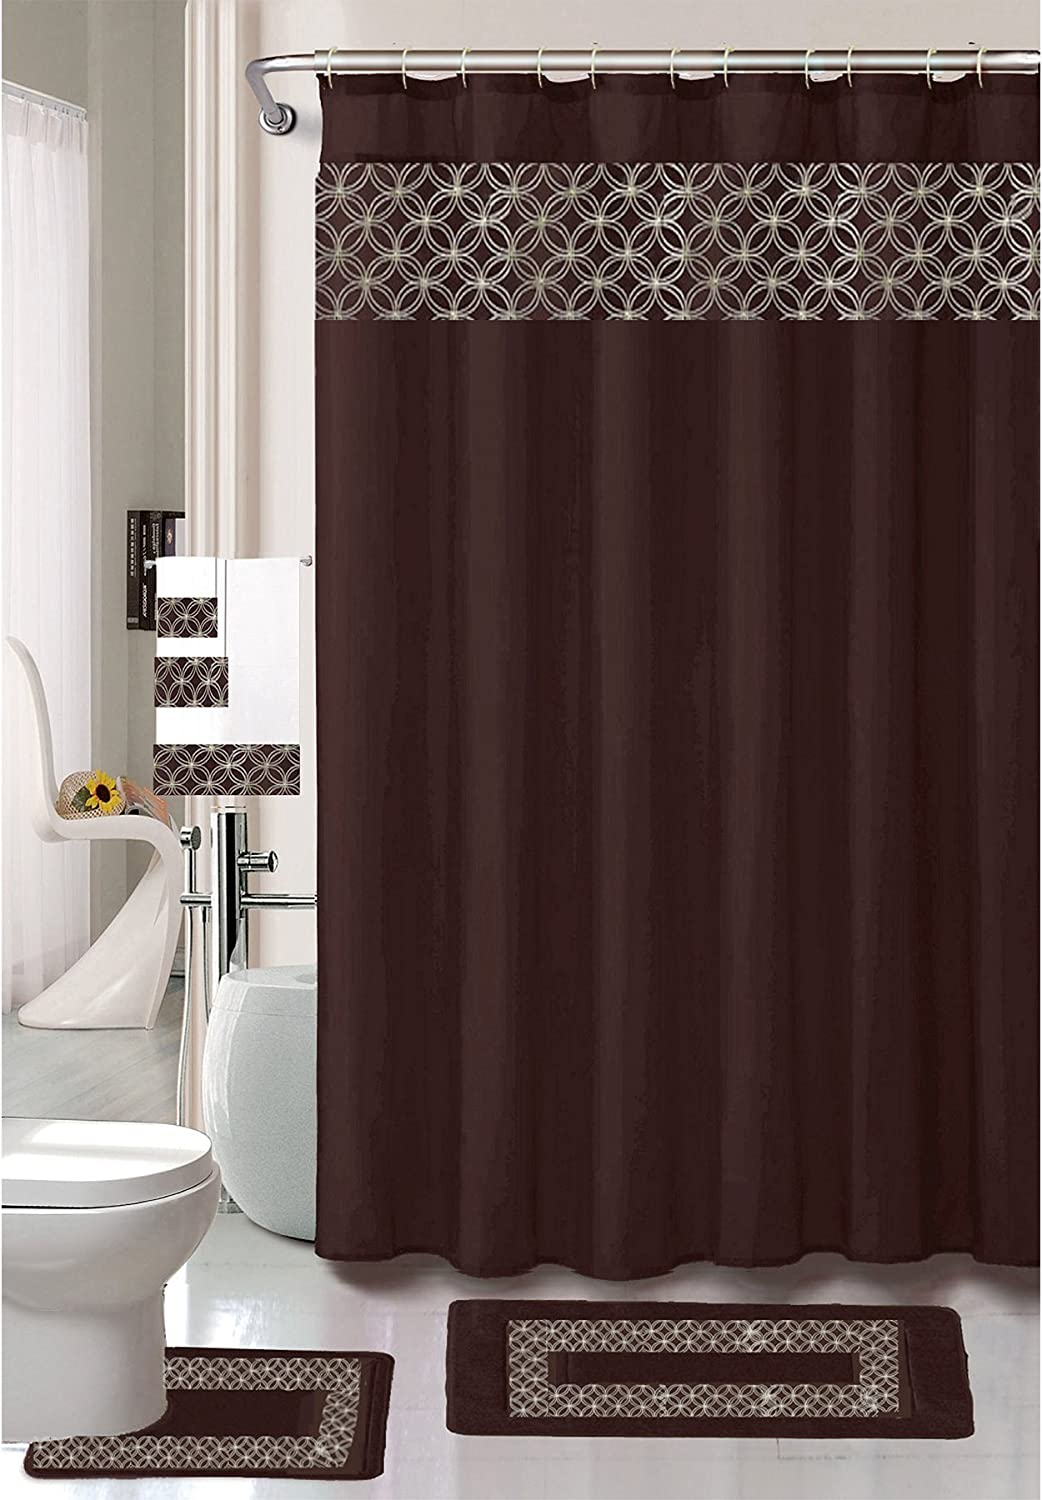 Kashi Home Virginia Embroidery 18 Pc Bathroom Accessories Set, Contour Rug, Shower Curtain with Hooks, Towels (Chocolate)